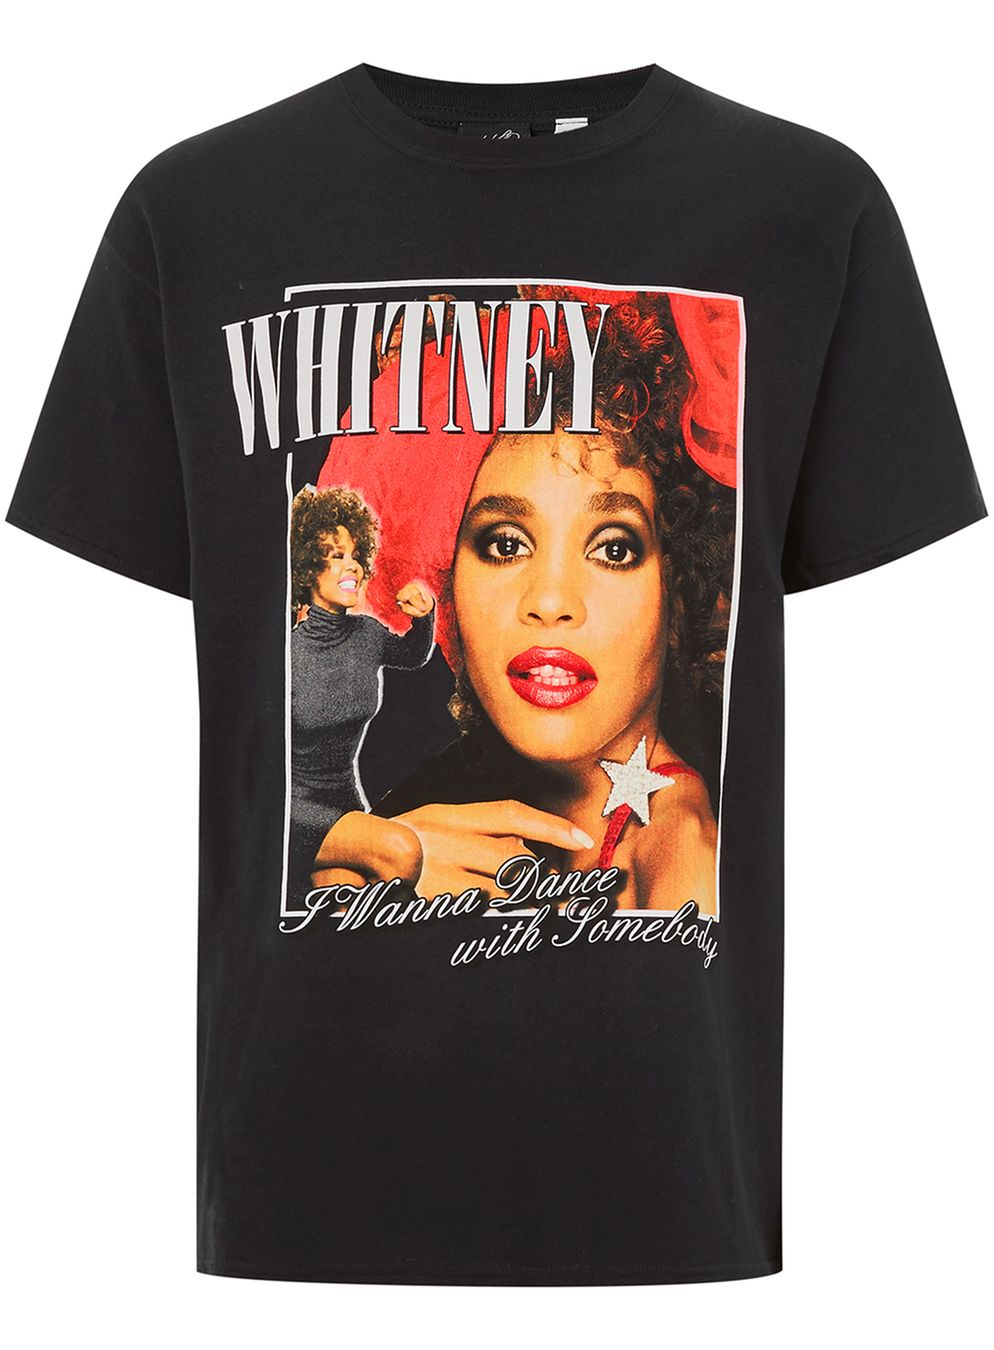 Black Whitney Houston T-Shirt £16